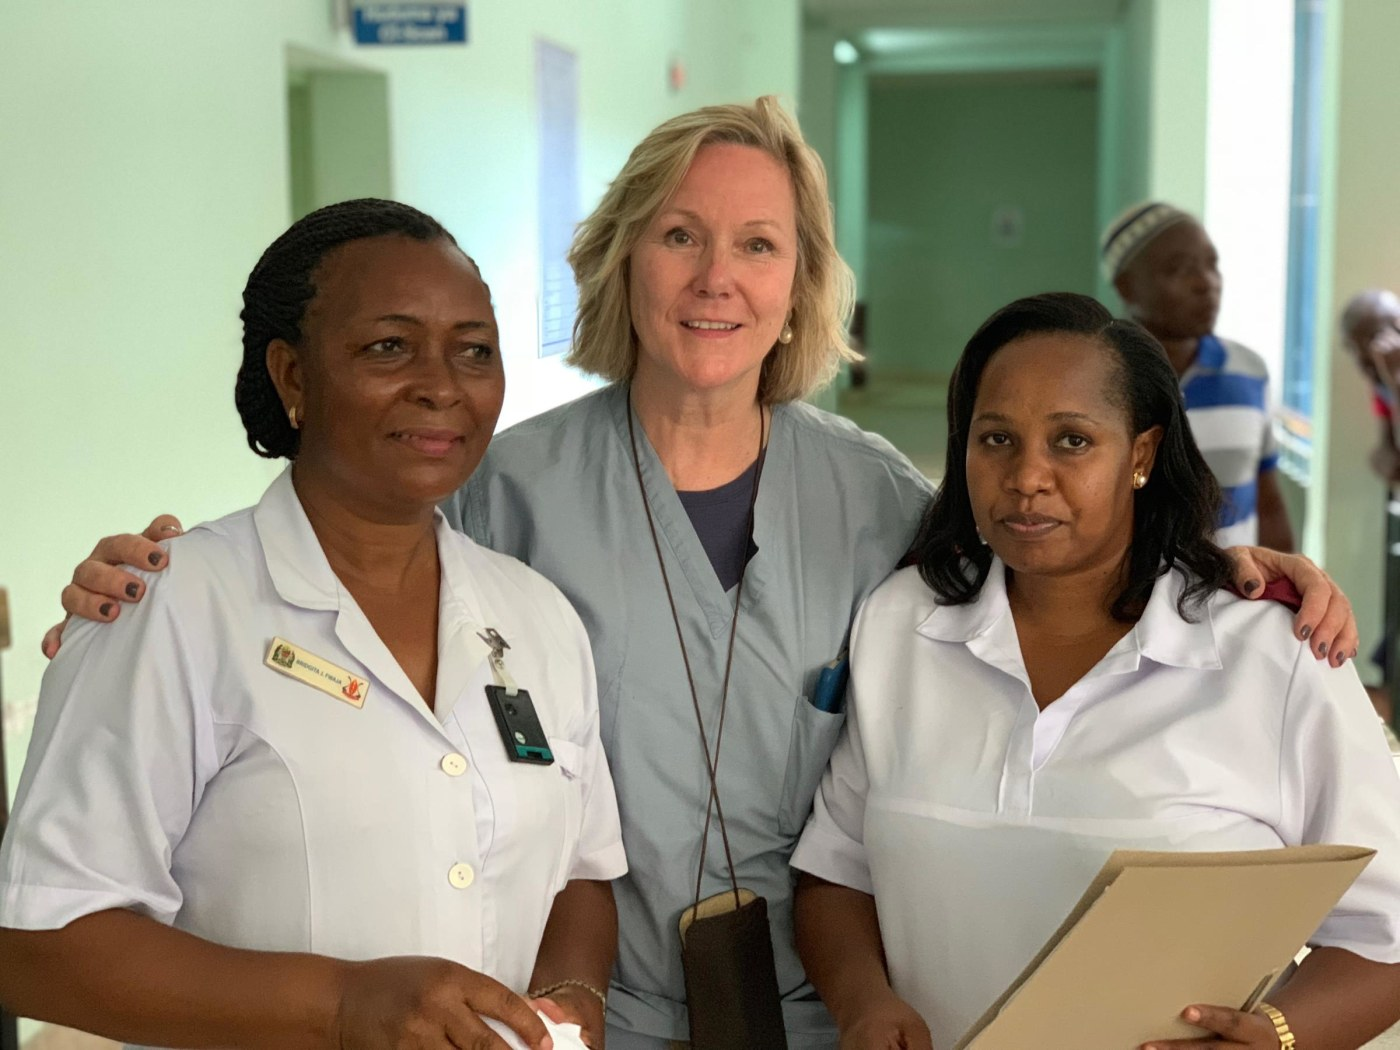 Combined nursing excellence from Yale and Muhimbili. From left to right: Bridgita Fwaja, Jeanne Burke, and Rose Umbe.